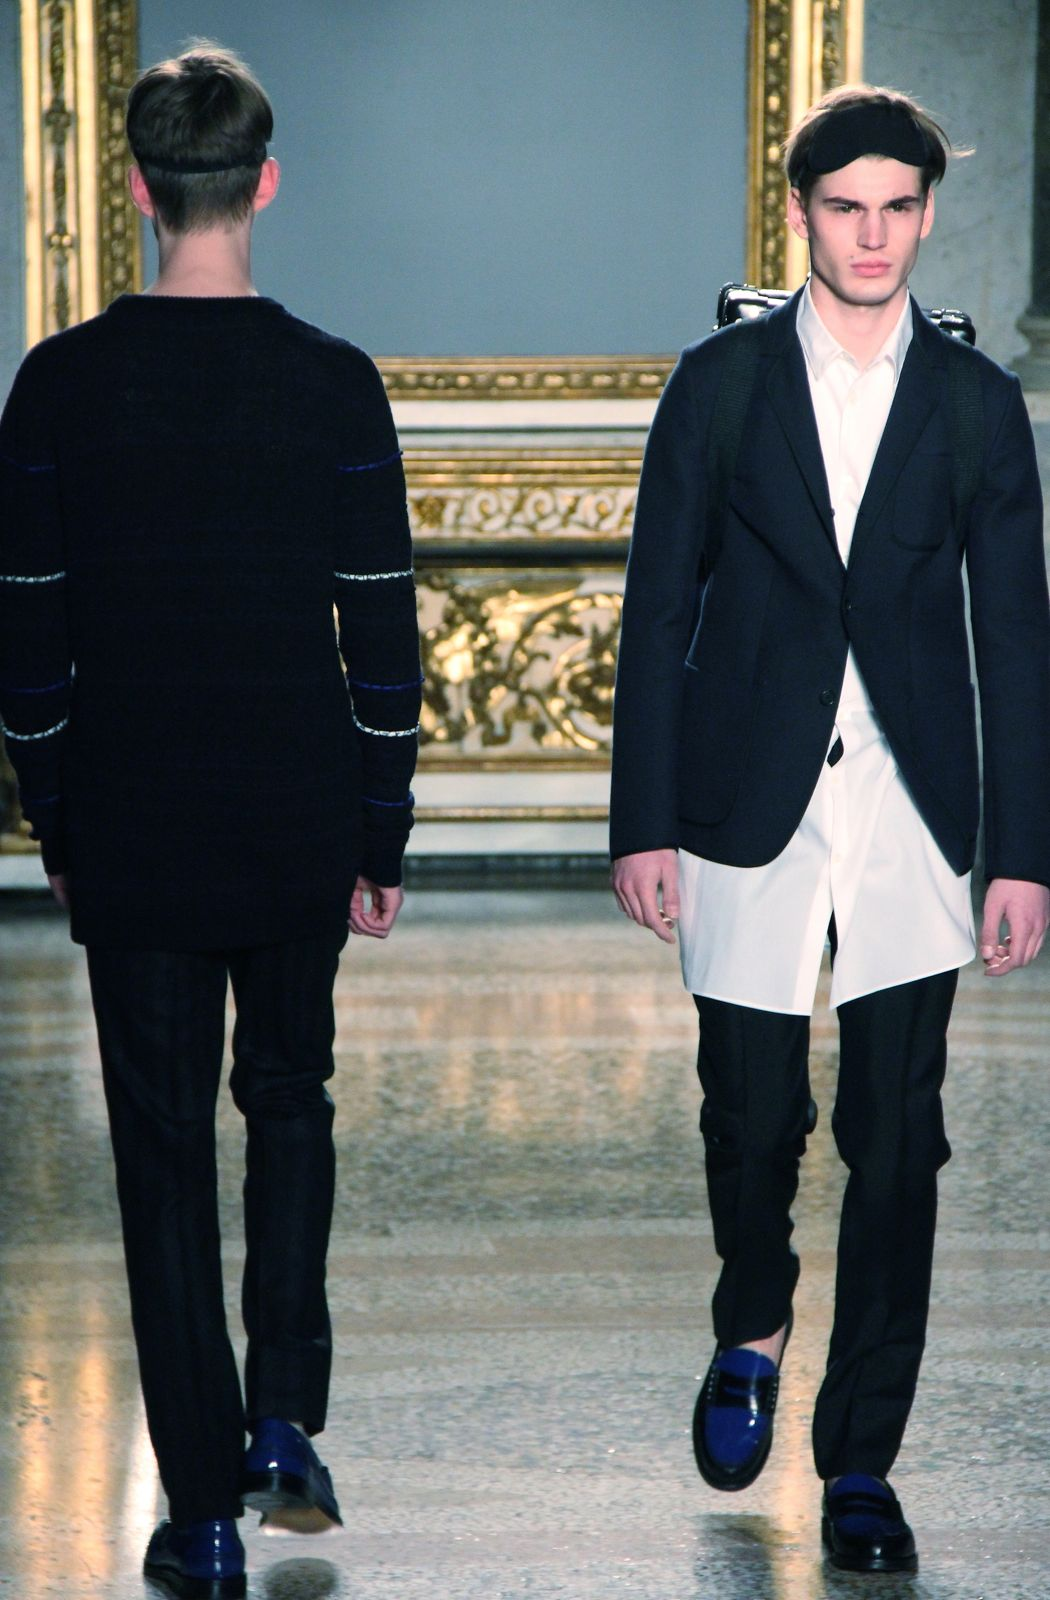 Nicole Farhi Fall Winter 2012